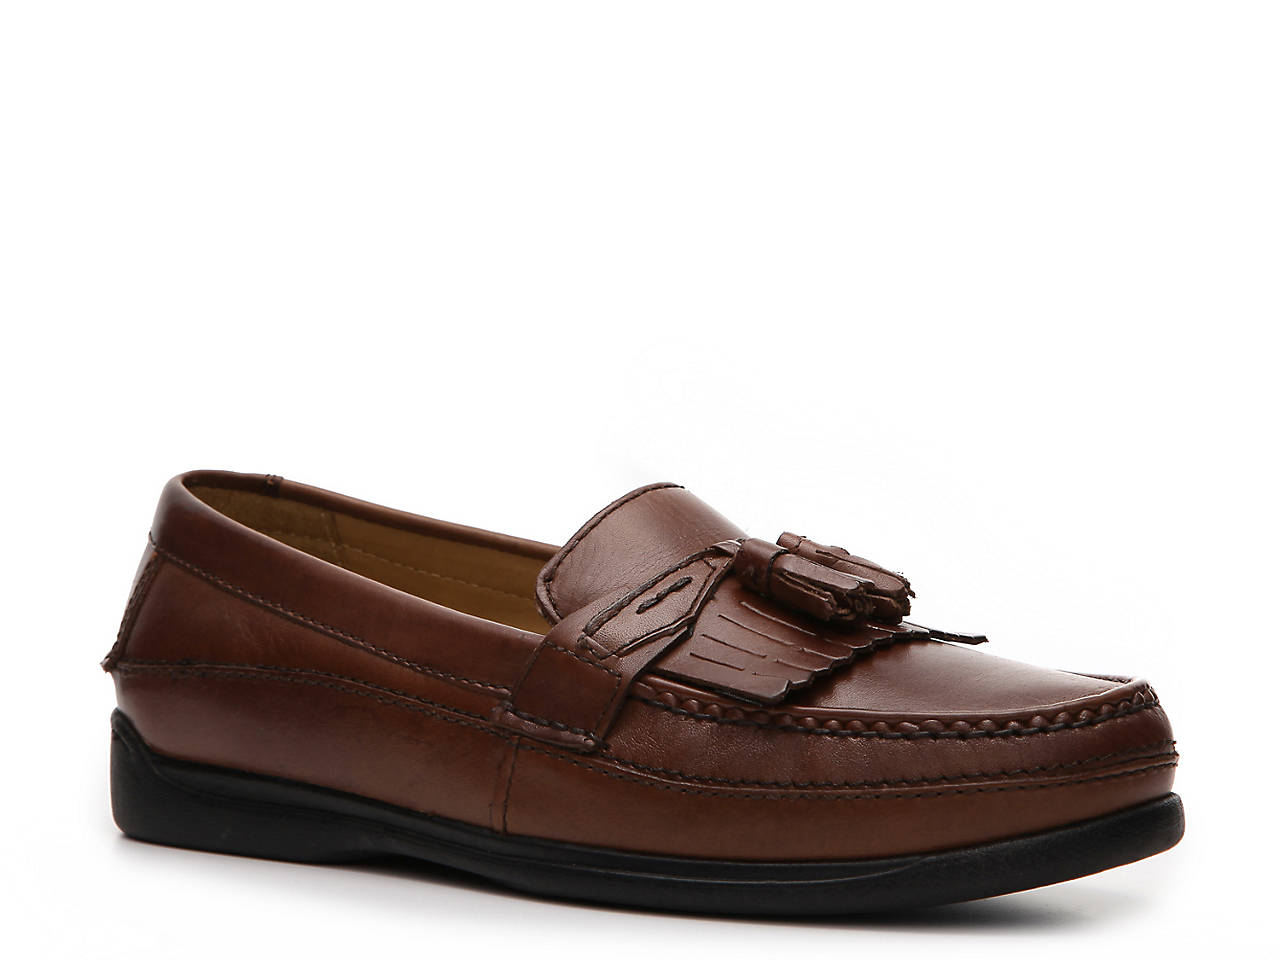 0786270979a Dockers Sinclair Tassel Loafer Men s Shoes